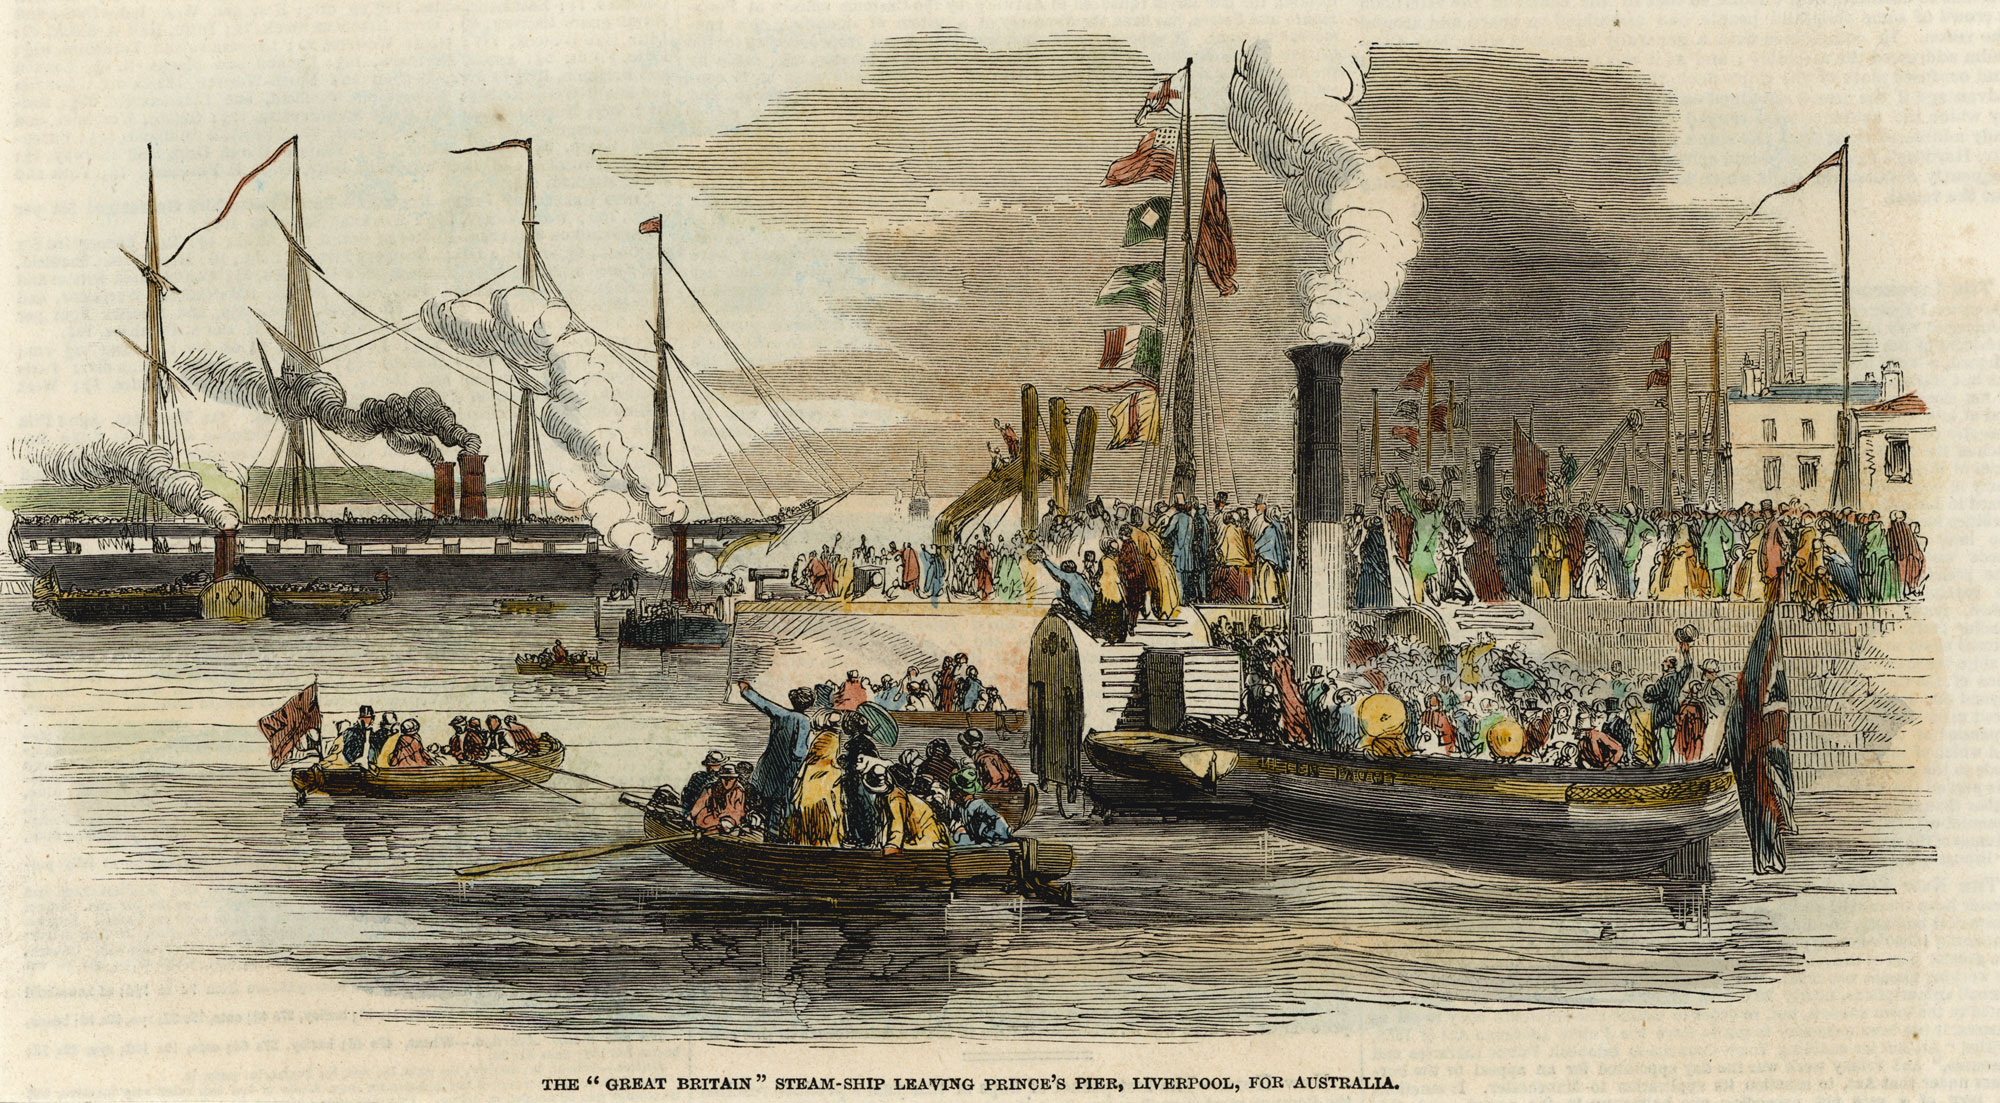 The SS Great Britain steam ship leaving Prince's Pier, Liverpool, for Australia, 1852.